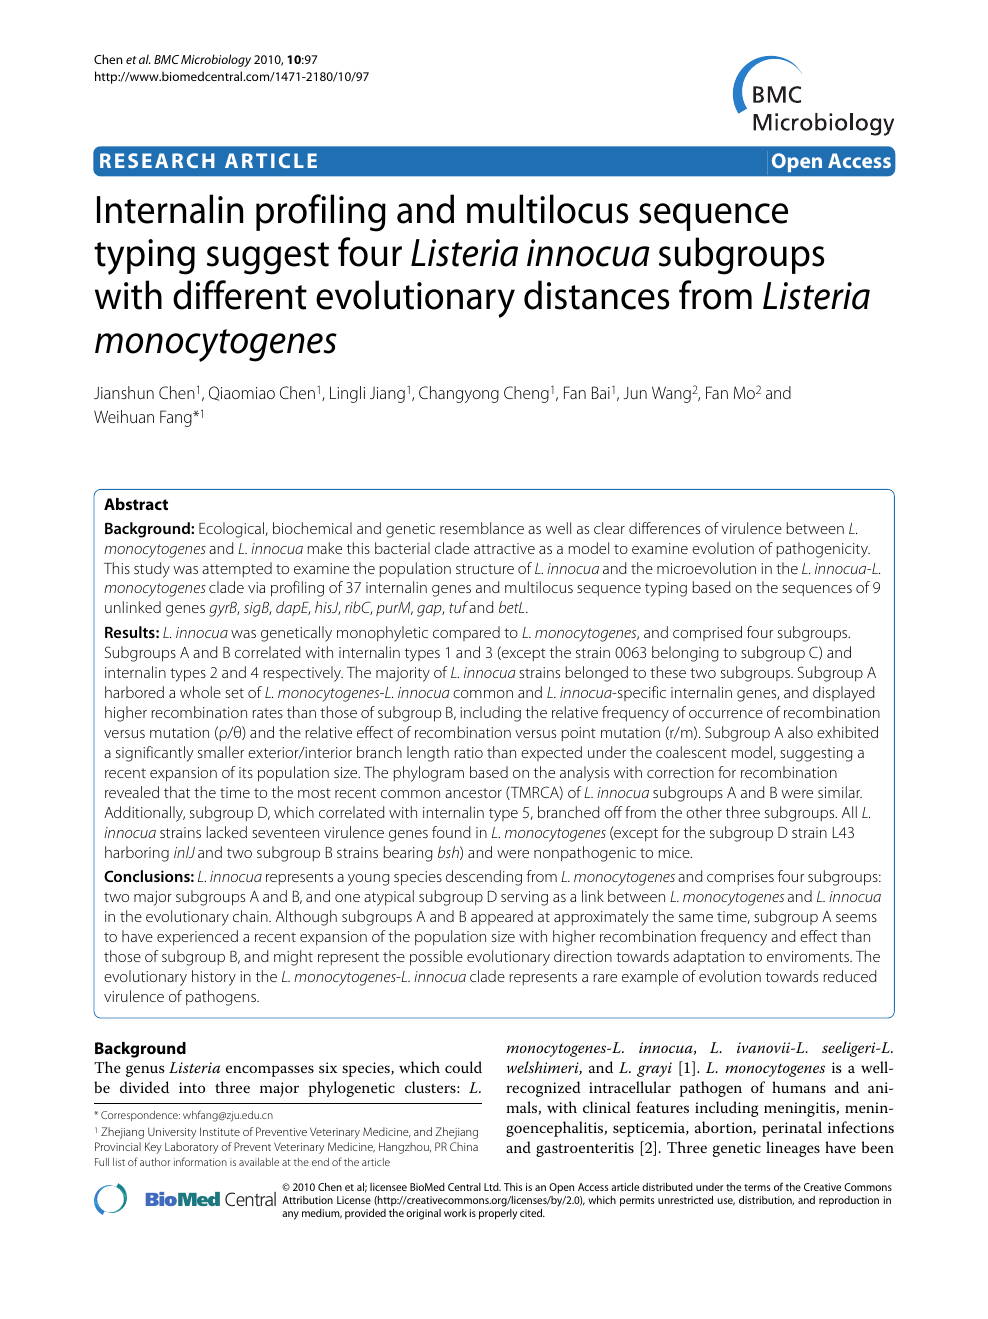 Internalin Profiling And Multilocus Sequence Typing Suggest Four Listeria Innocua Subgroups With Different Evolutionary Distances From Monocytogenes Topic Of Research Paper In Biological Sciences Download Scholarly Article Pdf Read